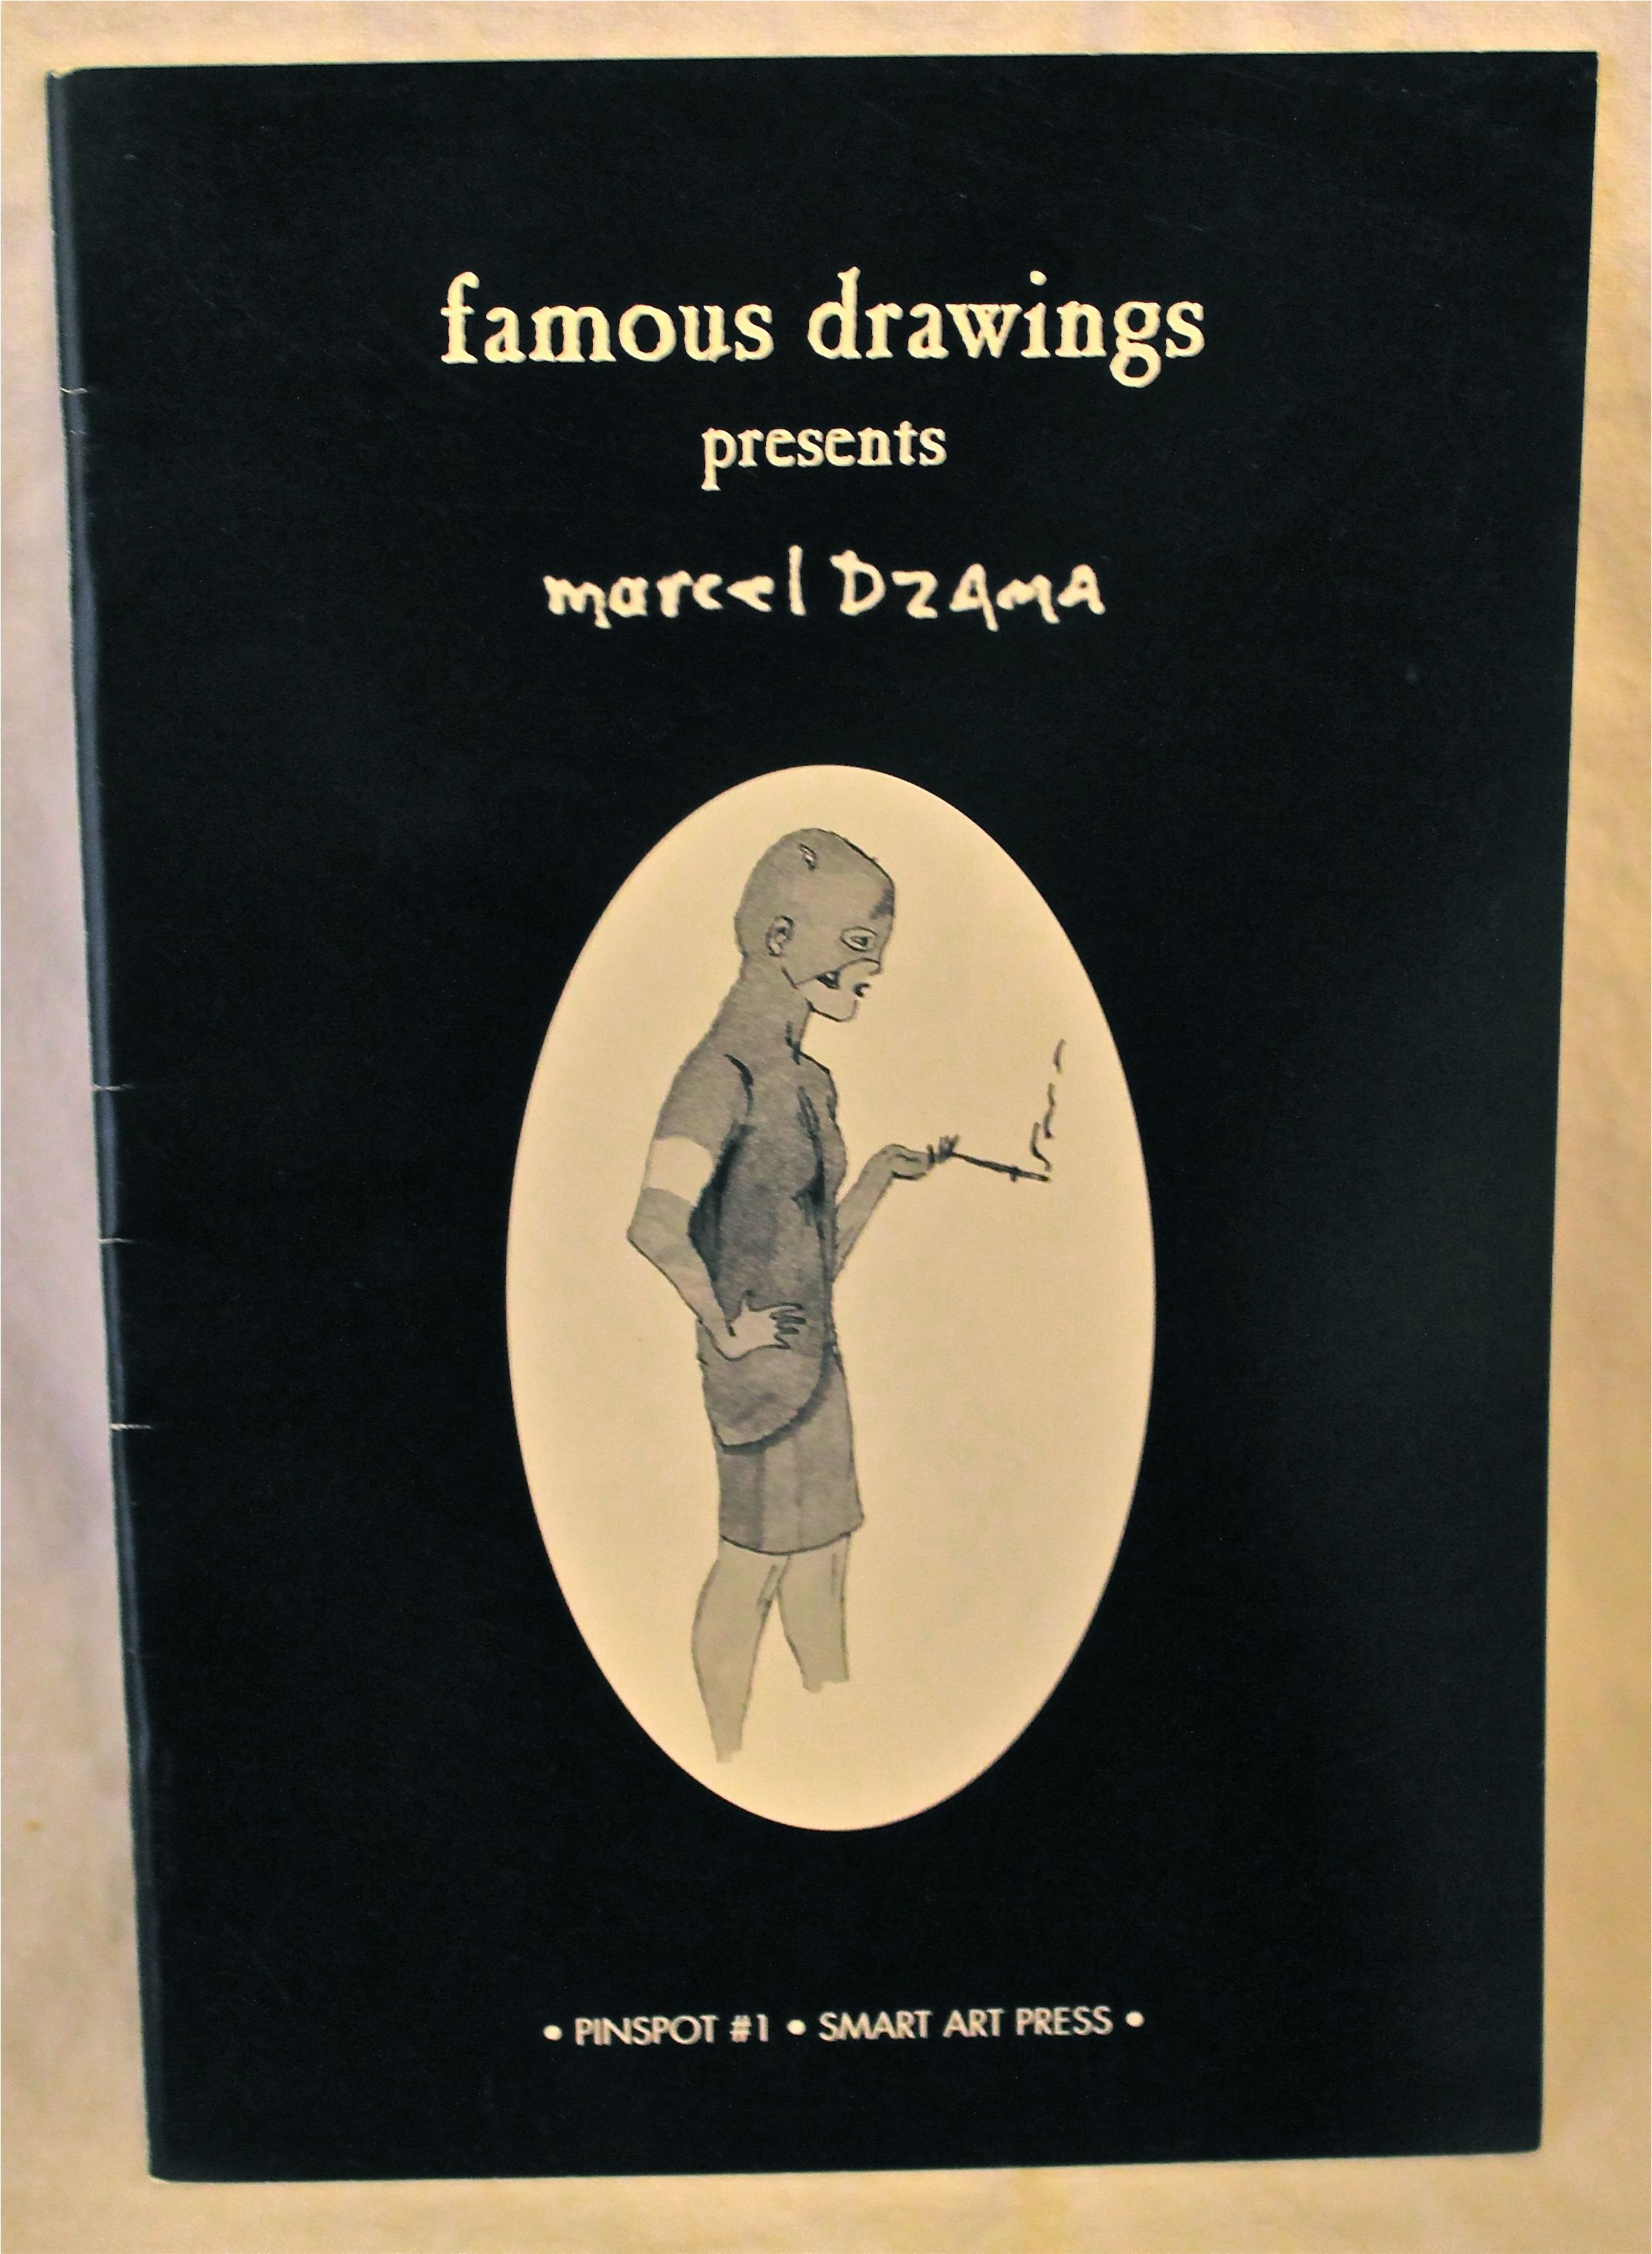 Image for Famous drawings presents Marcel Dzama (Pinspot)